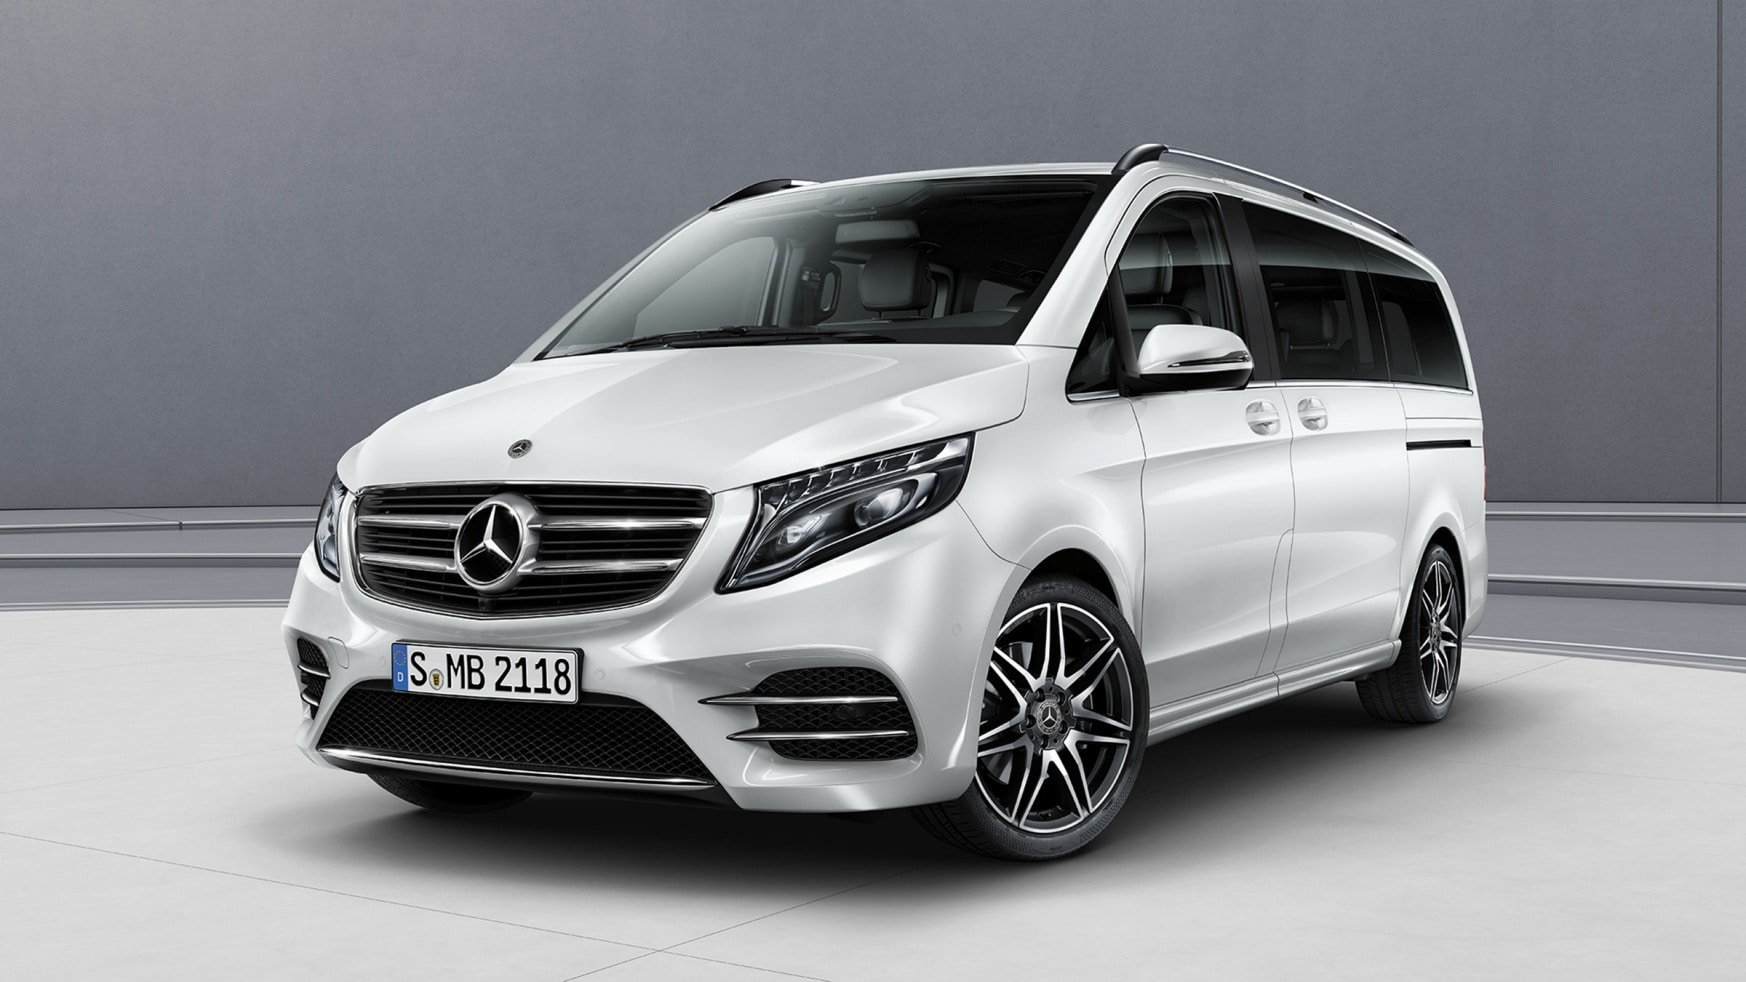 V-Class, Features, Equipment, AMG Line, Exterior, Upfront confidence, Bumper